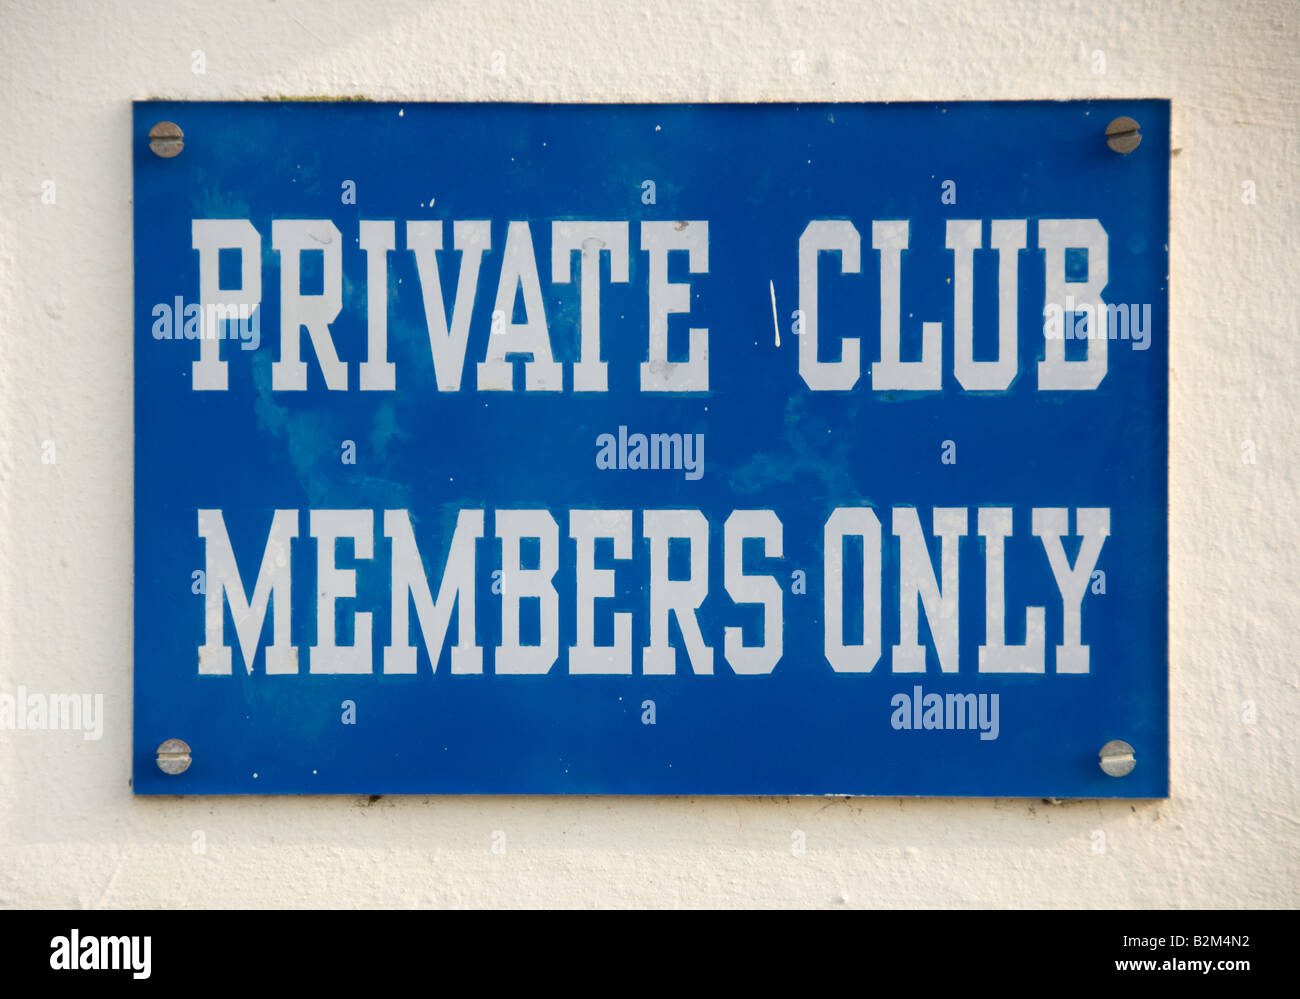 private club members only sign - Stock Image